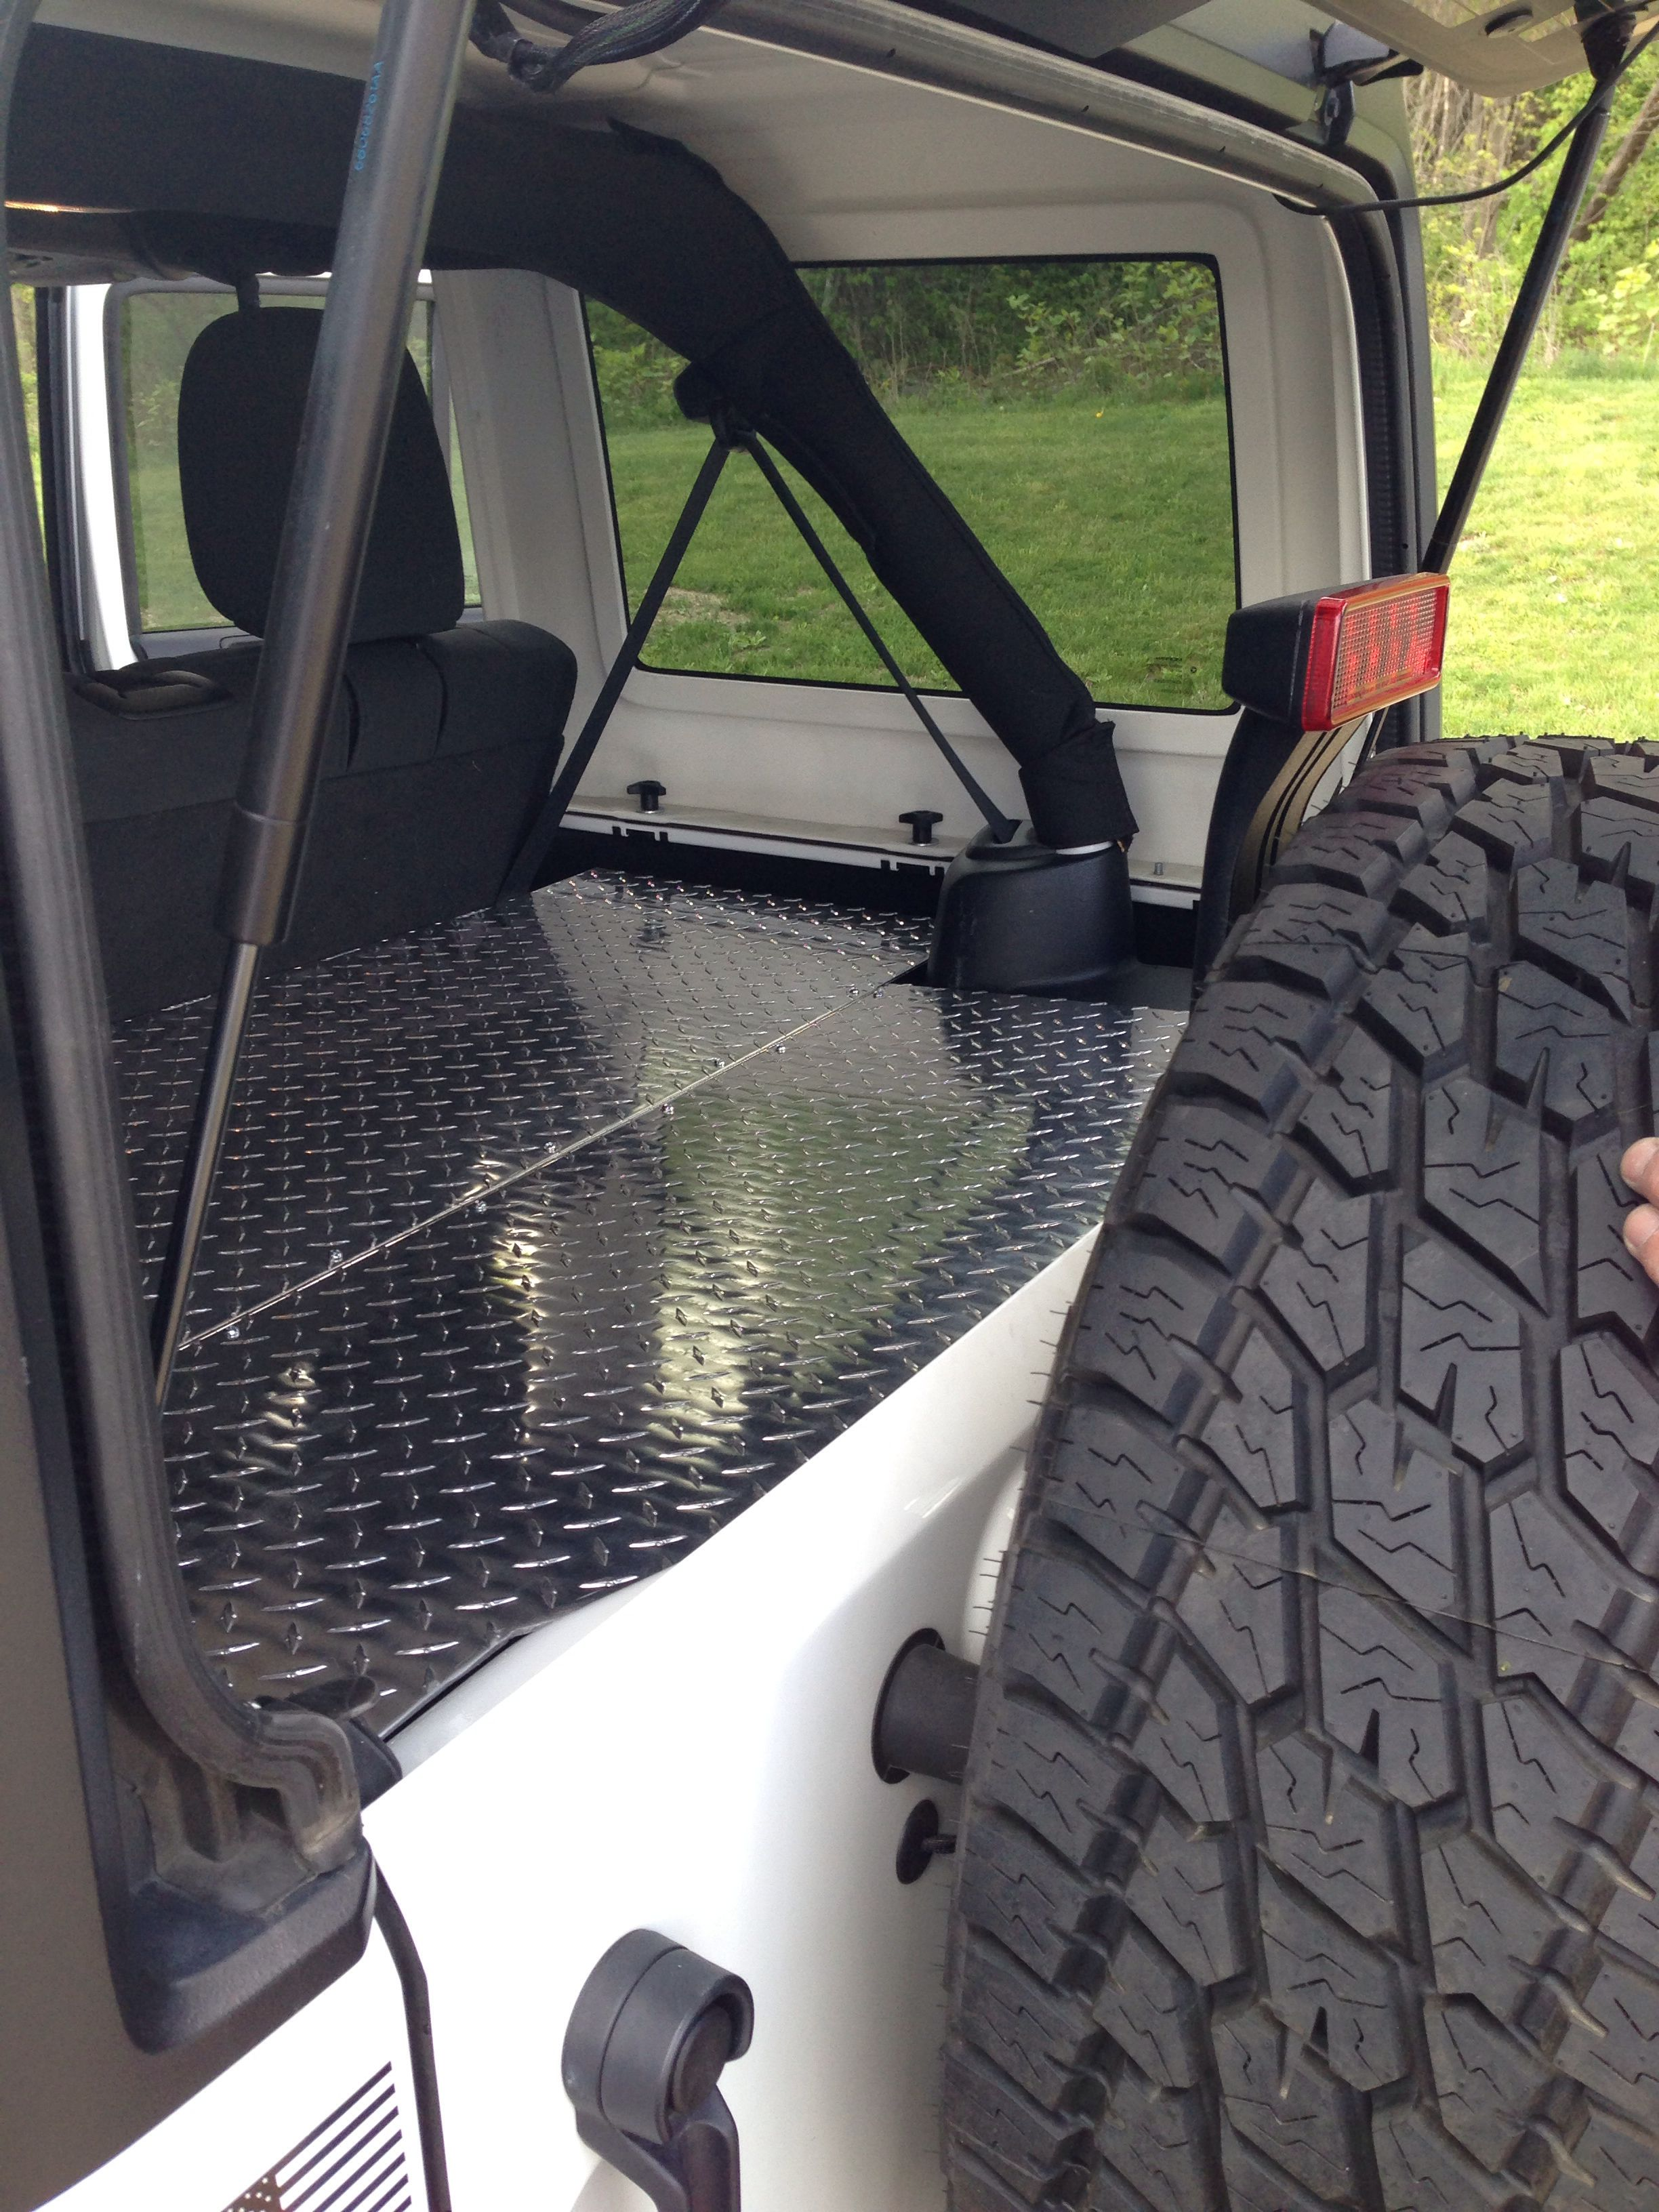 Jeep Wrangler Cargo Area Cover Made From Aluminum Diamond Plate Jeep Wrangler Accessories Diy Jeep Wrangler Accessories Jeep Yj